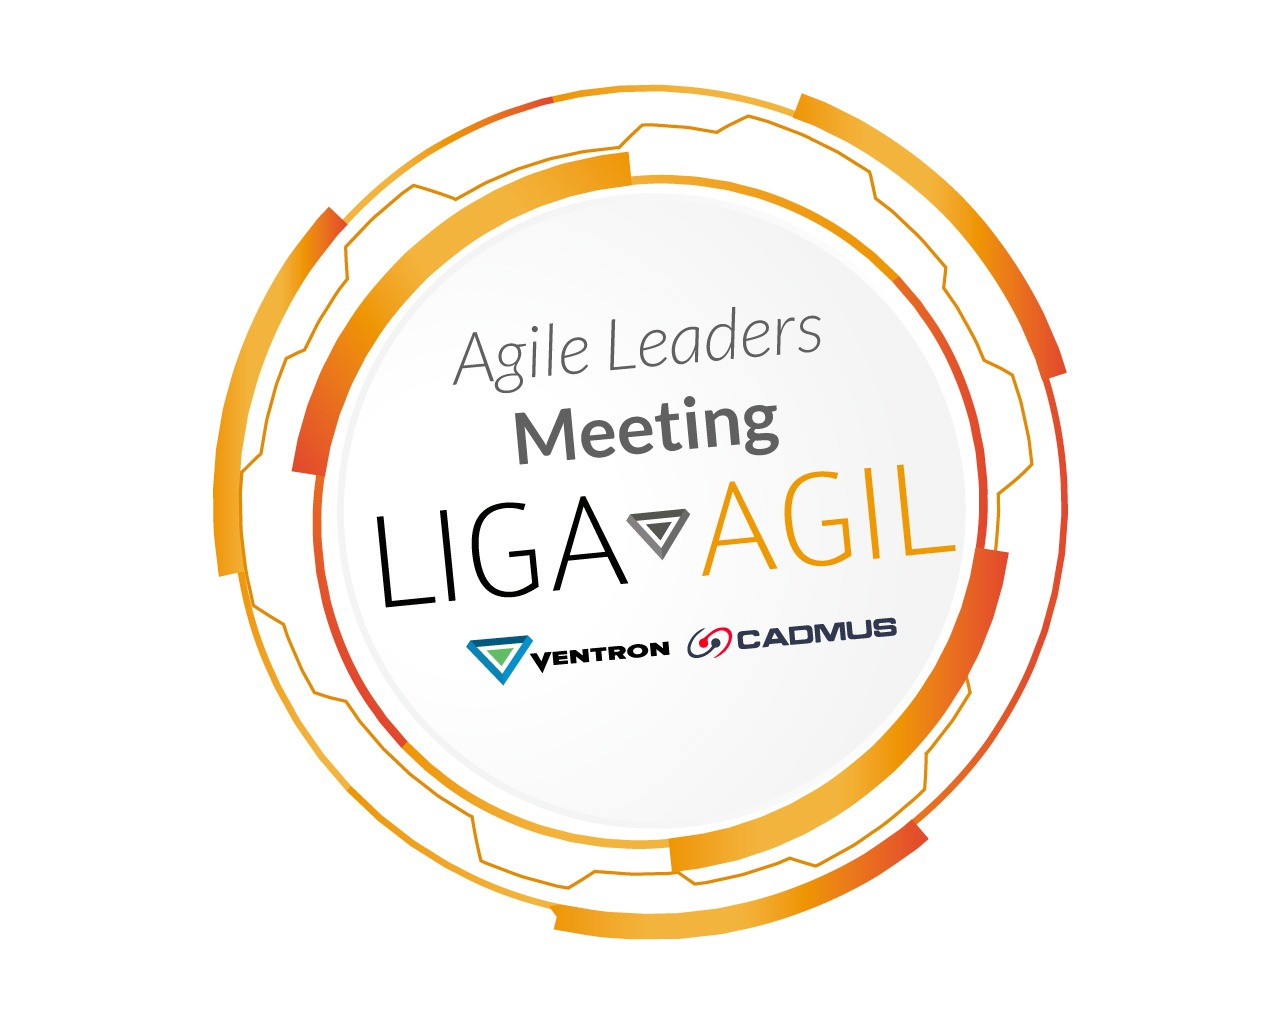 O Agile Leaders Meeting 2019 – RJ